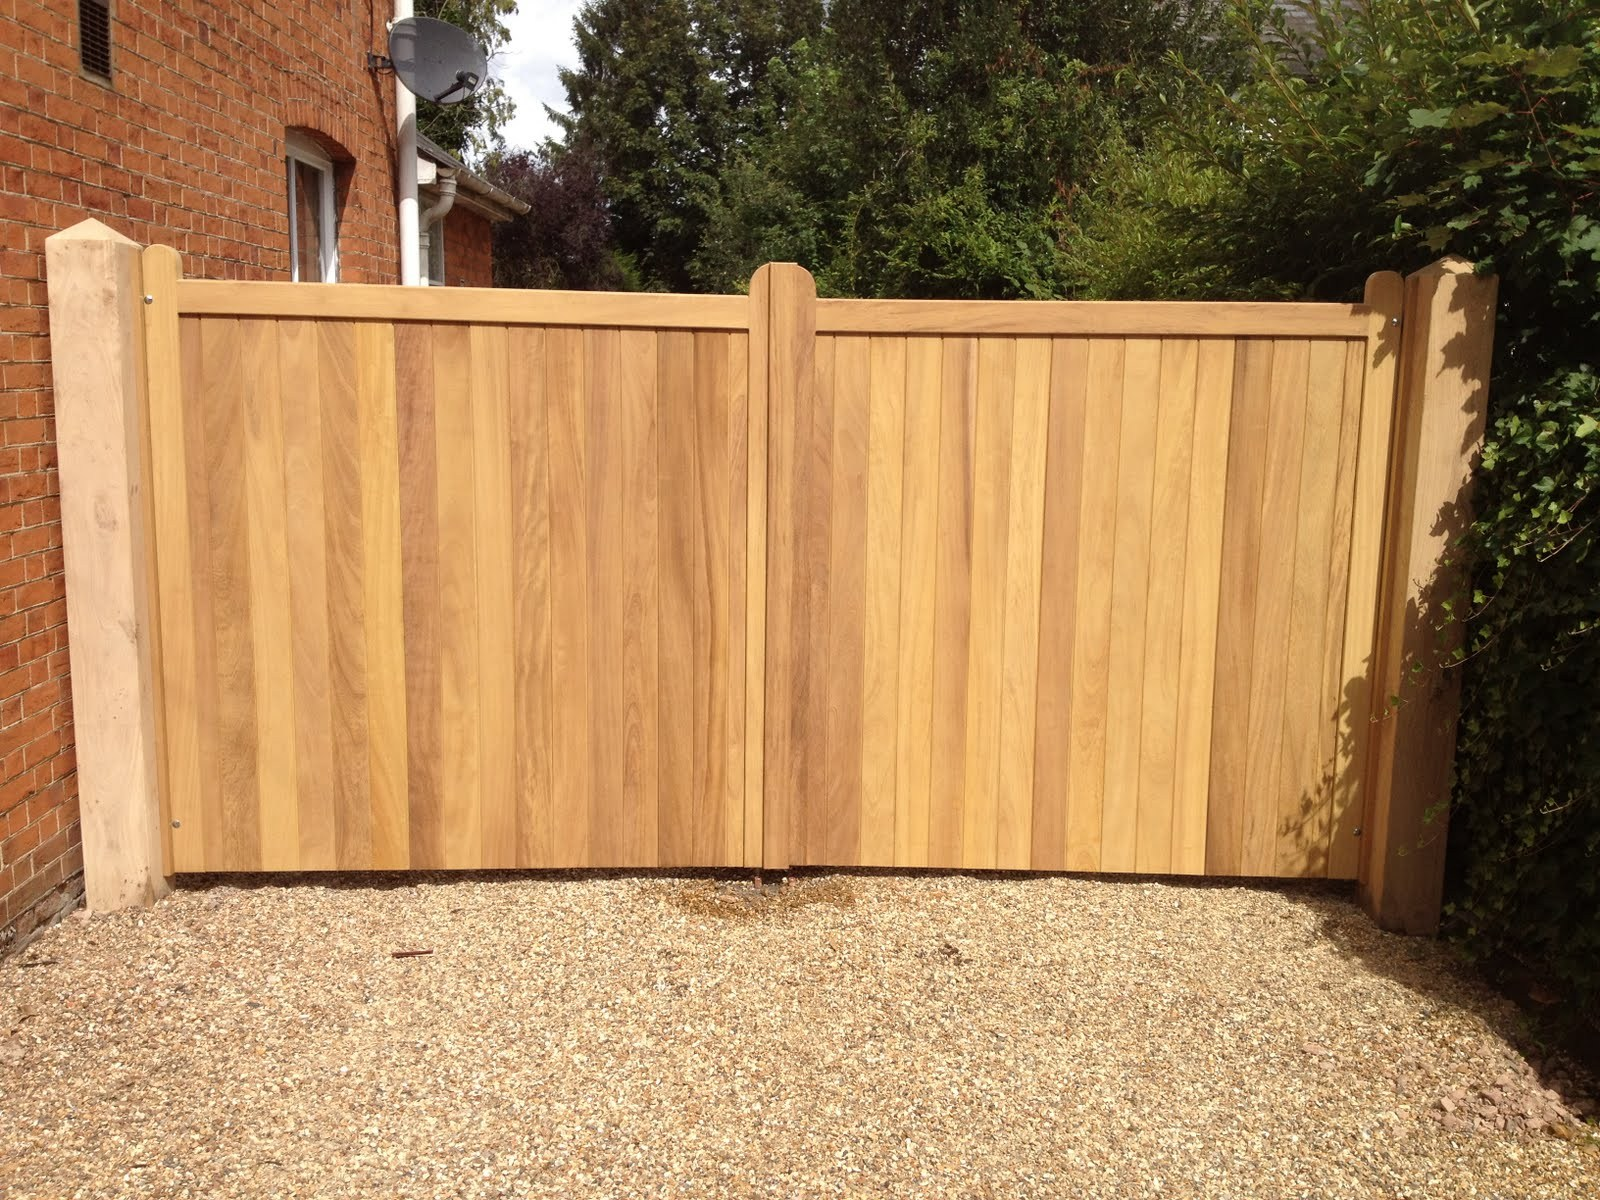 Res wooden gates gkw wrought iron kent for Single wooden driveway gates